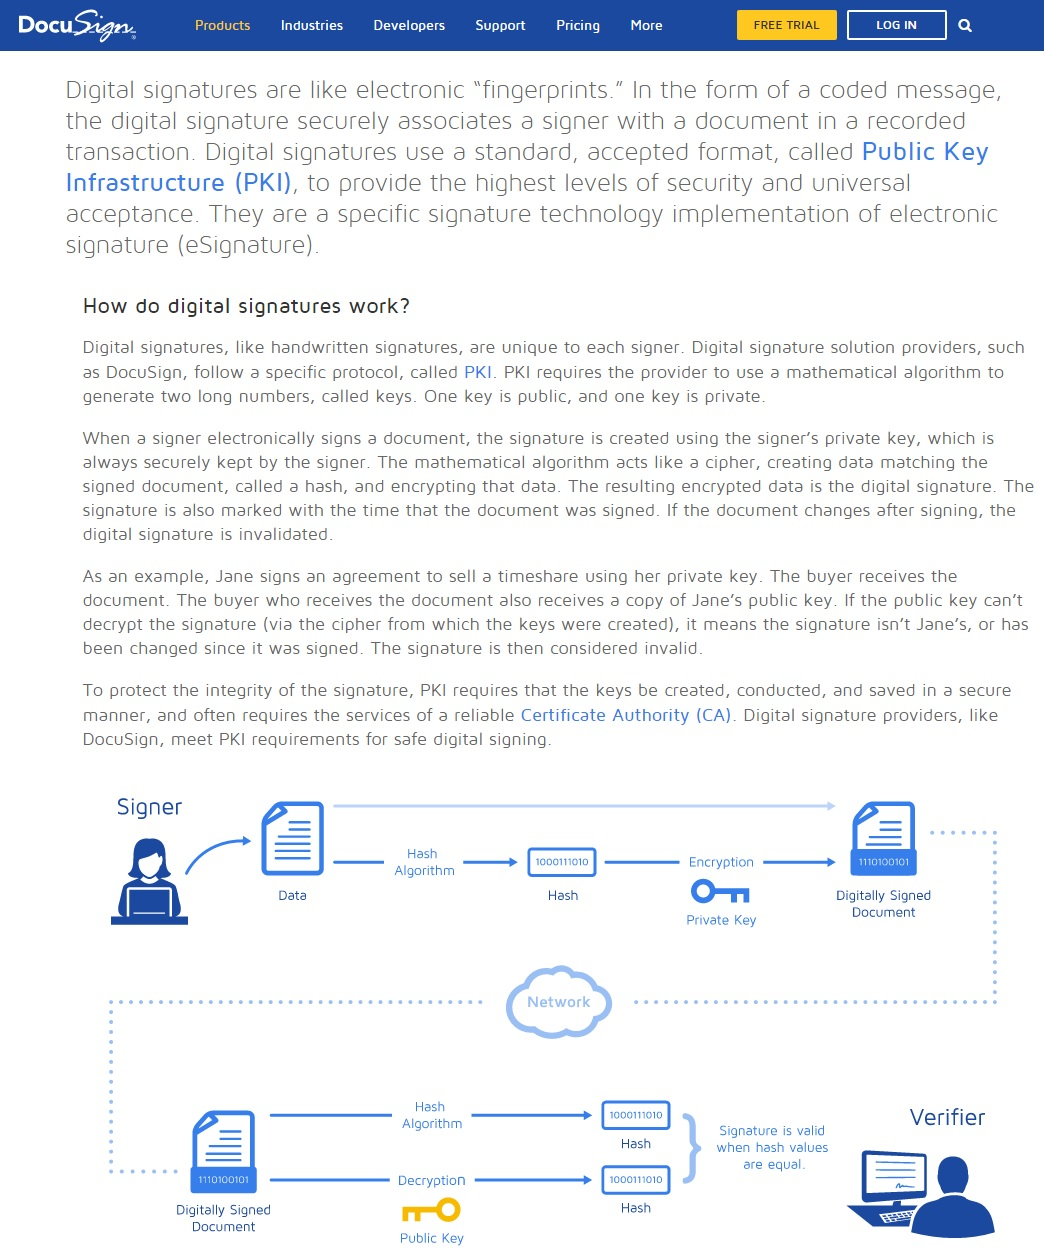 21.1: Digital signatures and other forms of electronic signatures are legally binding in many jurisdictions. This is some material from the website of the electronic signing company DocuSign.